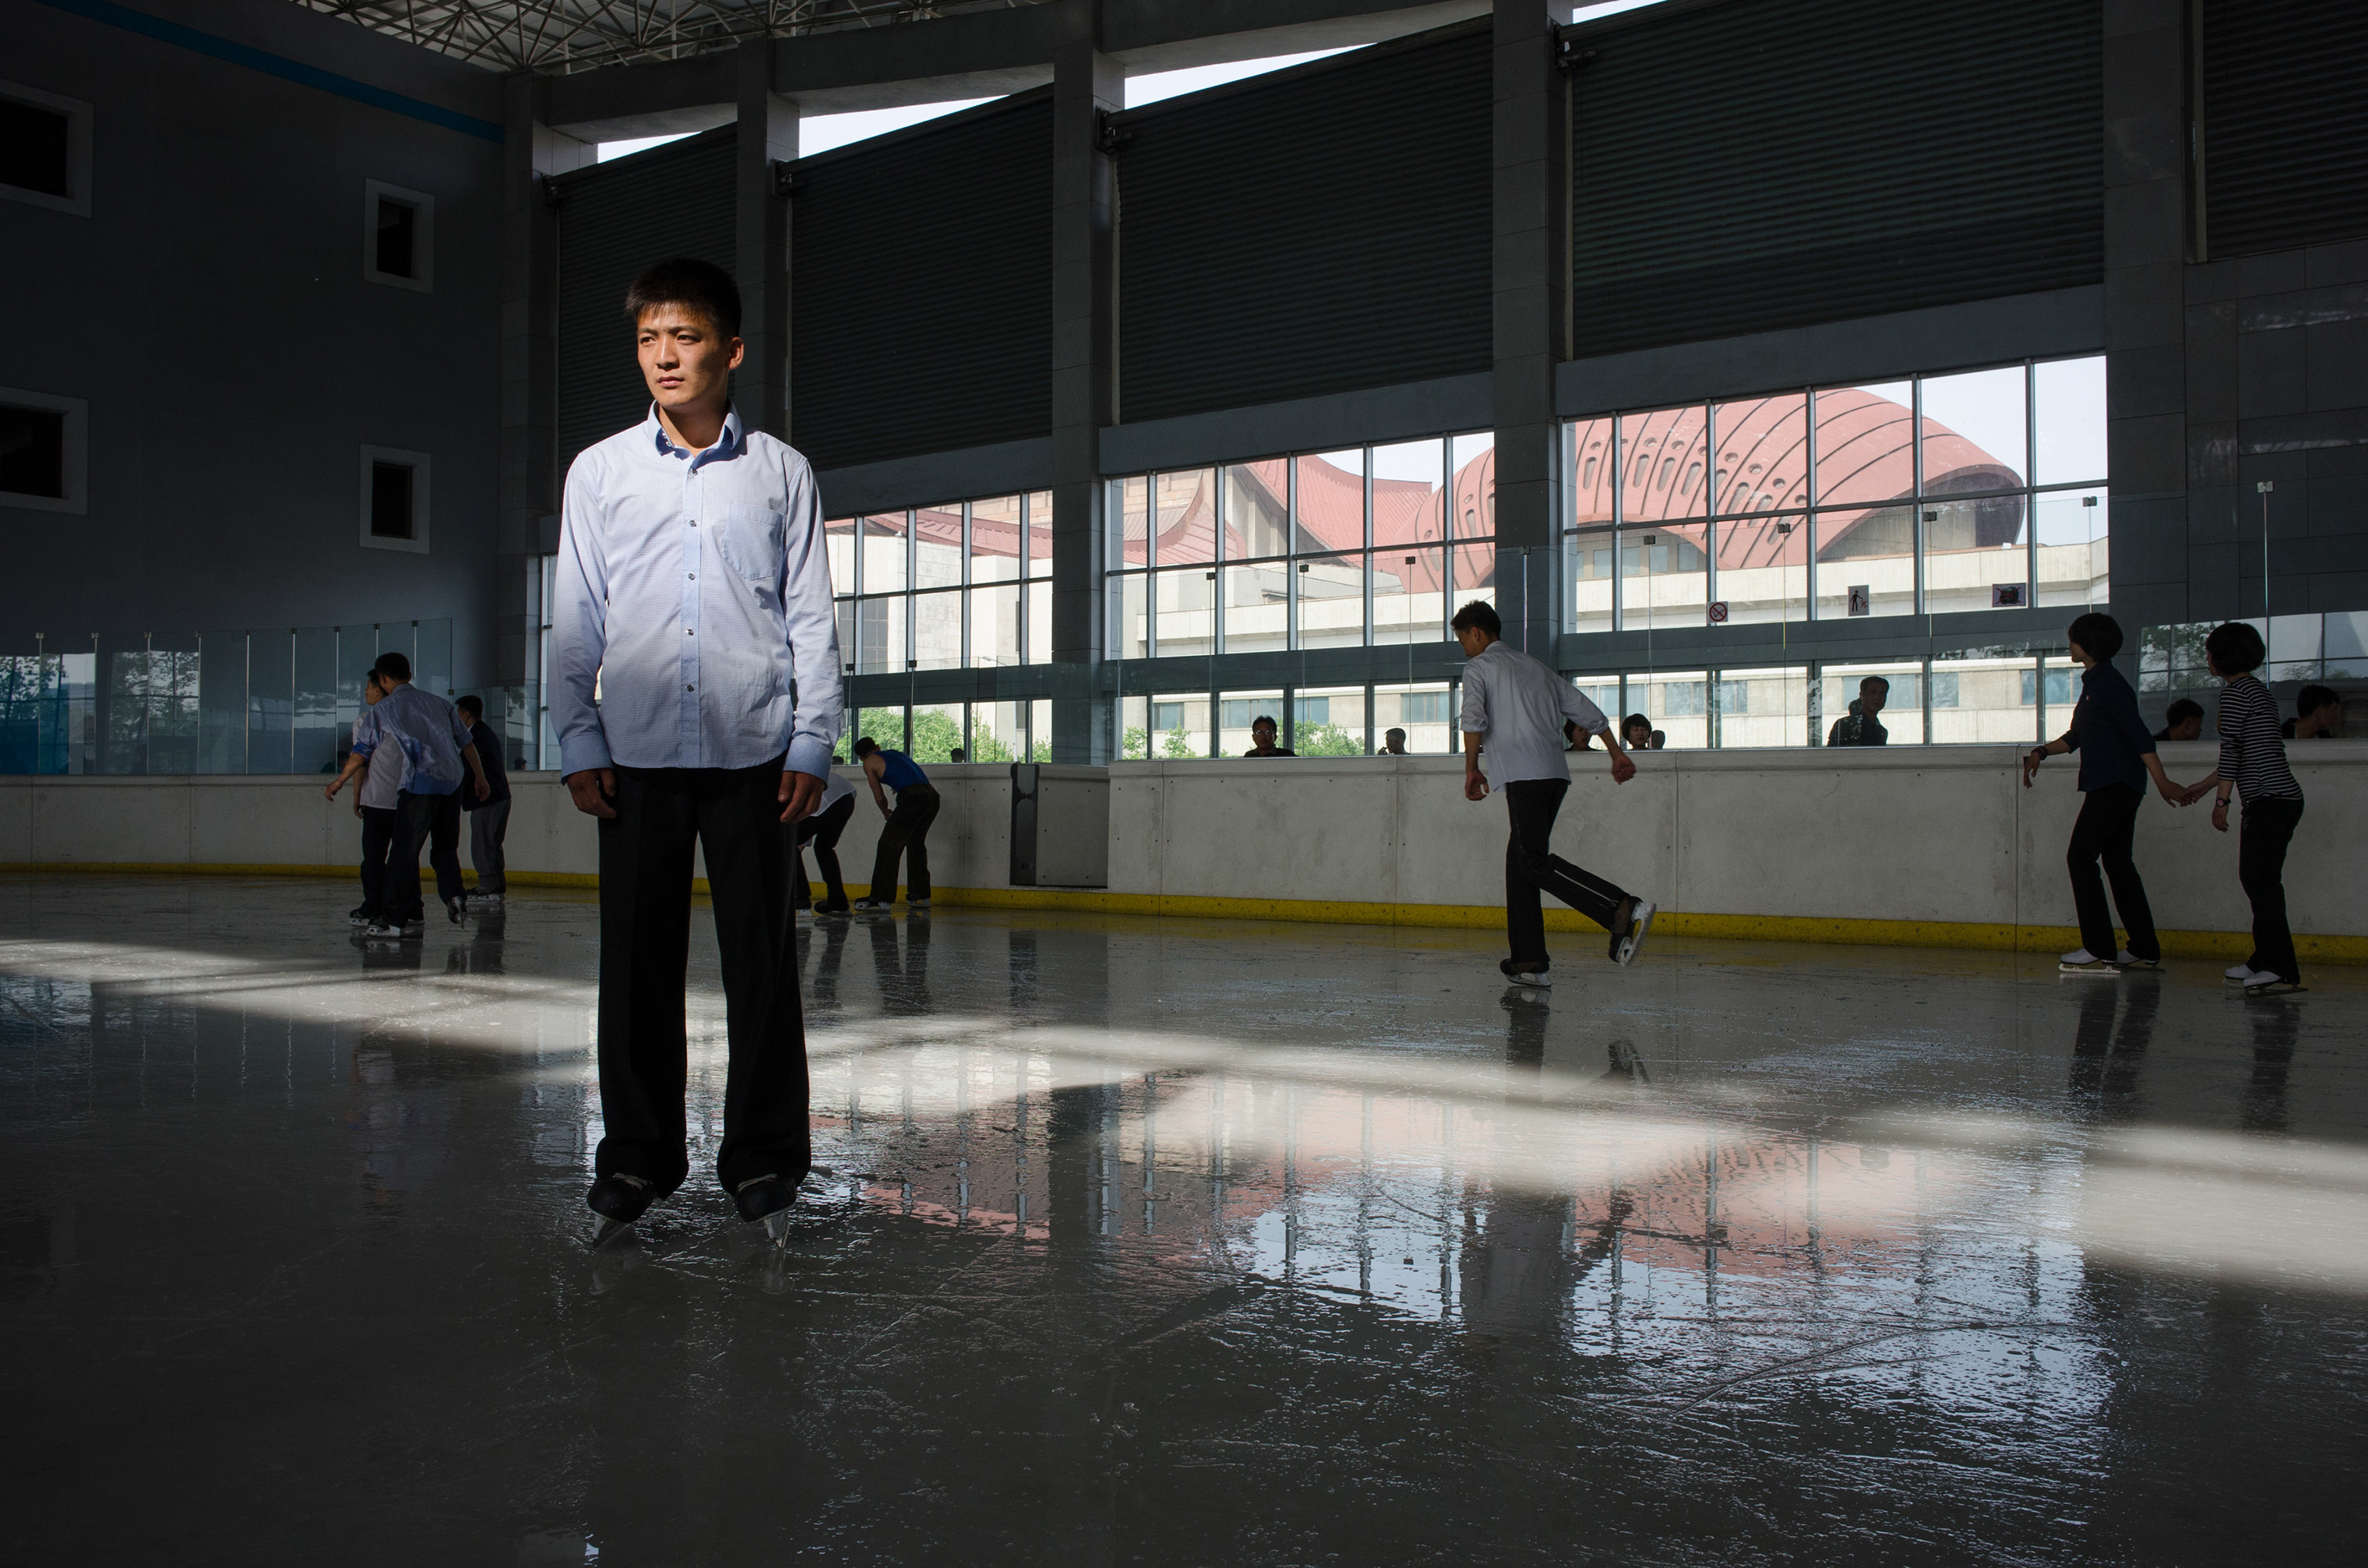 Ri Yong Min, 21, a boxing champion, at an outdoor ice rink in 2014.